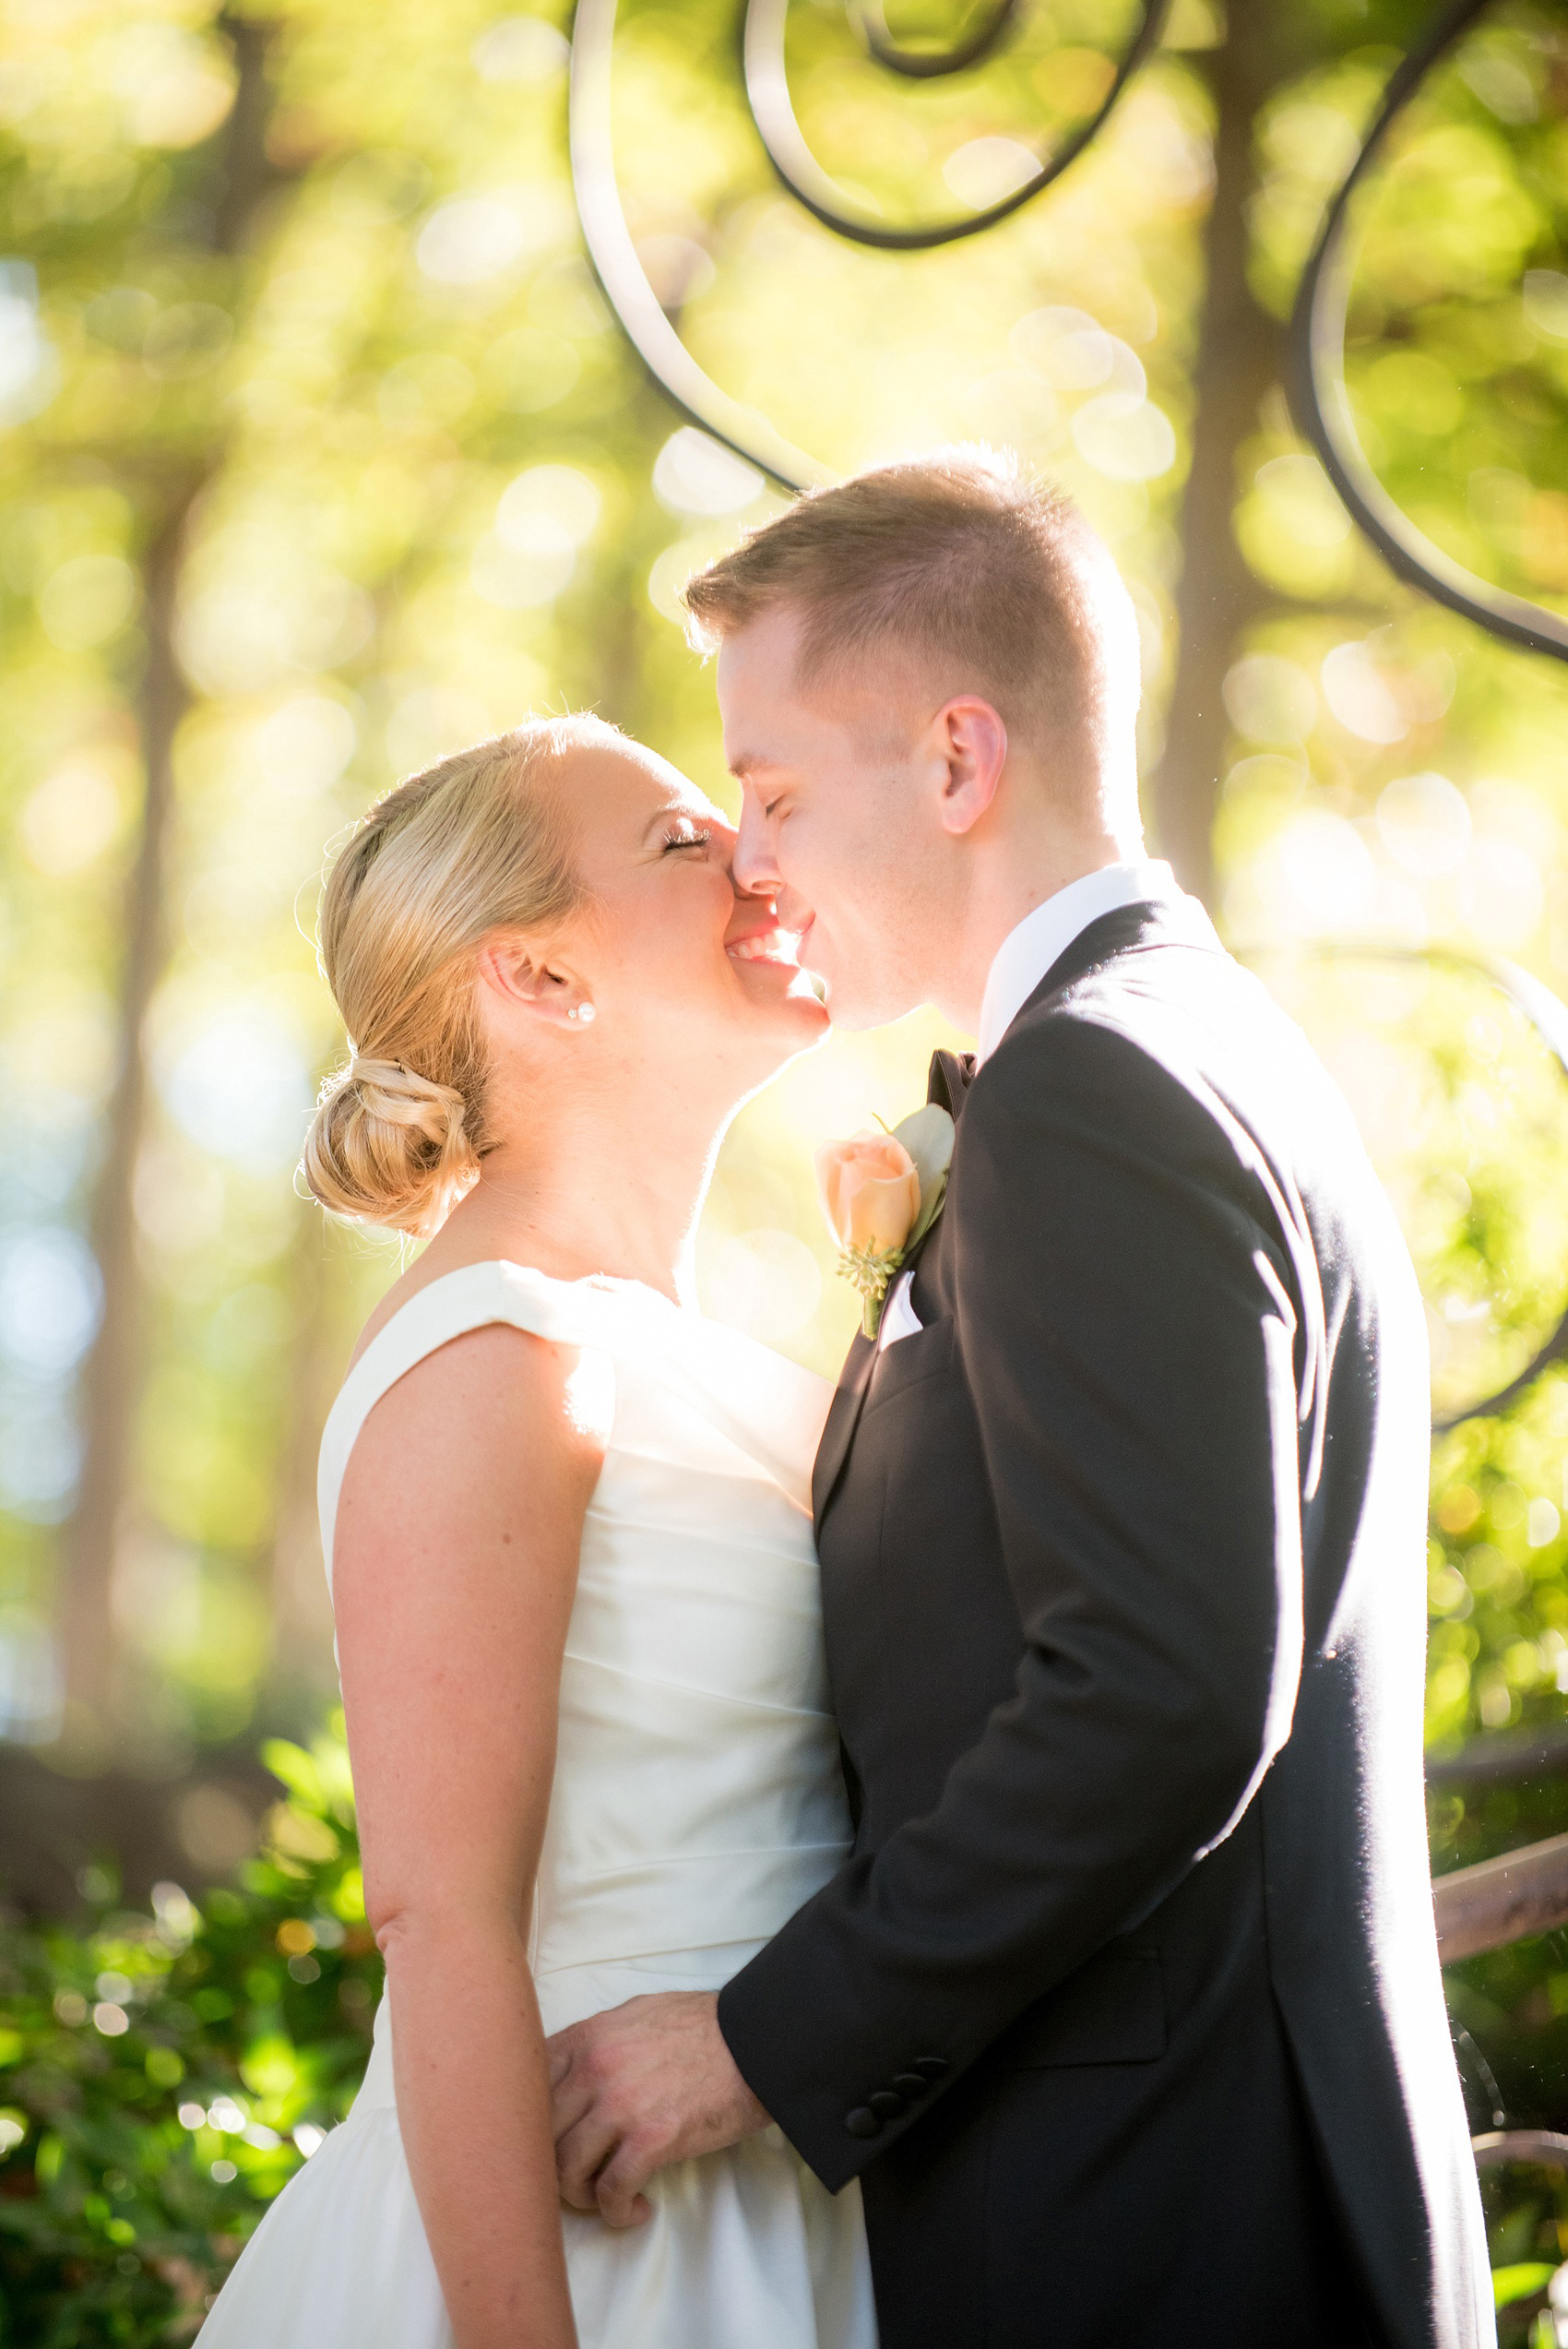 Mikkel Paige Photography photo of a wedding at The Rickhouse, North Carolina. The bride and groom kiss in Durham Central Park after their first look!